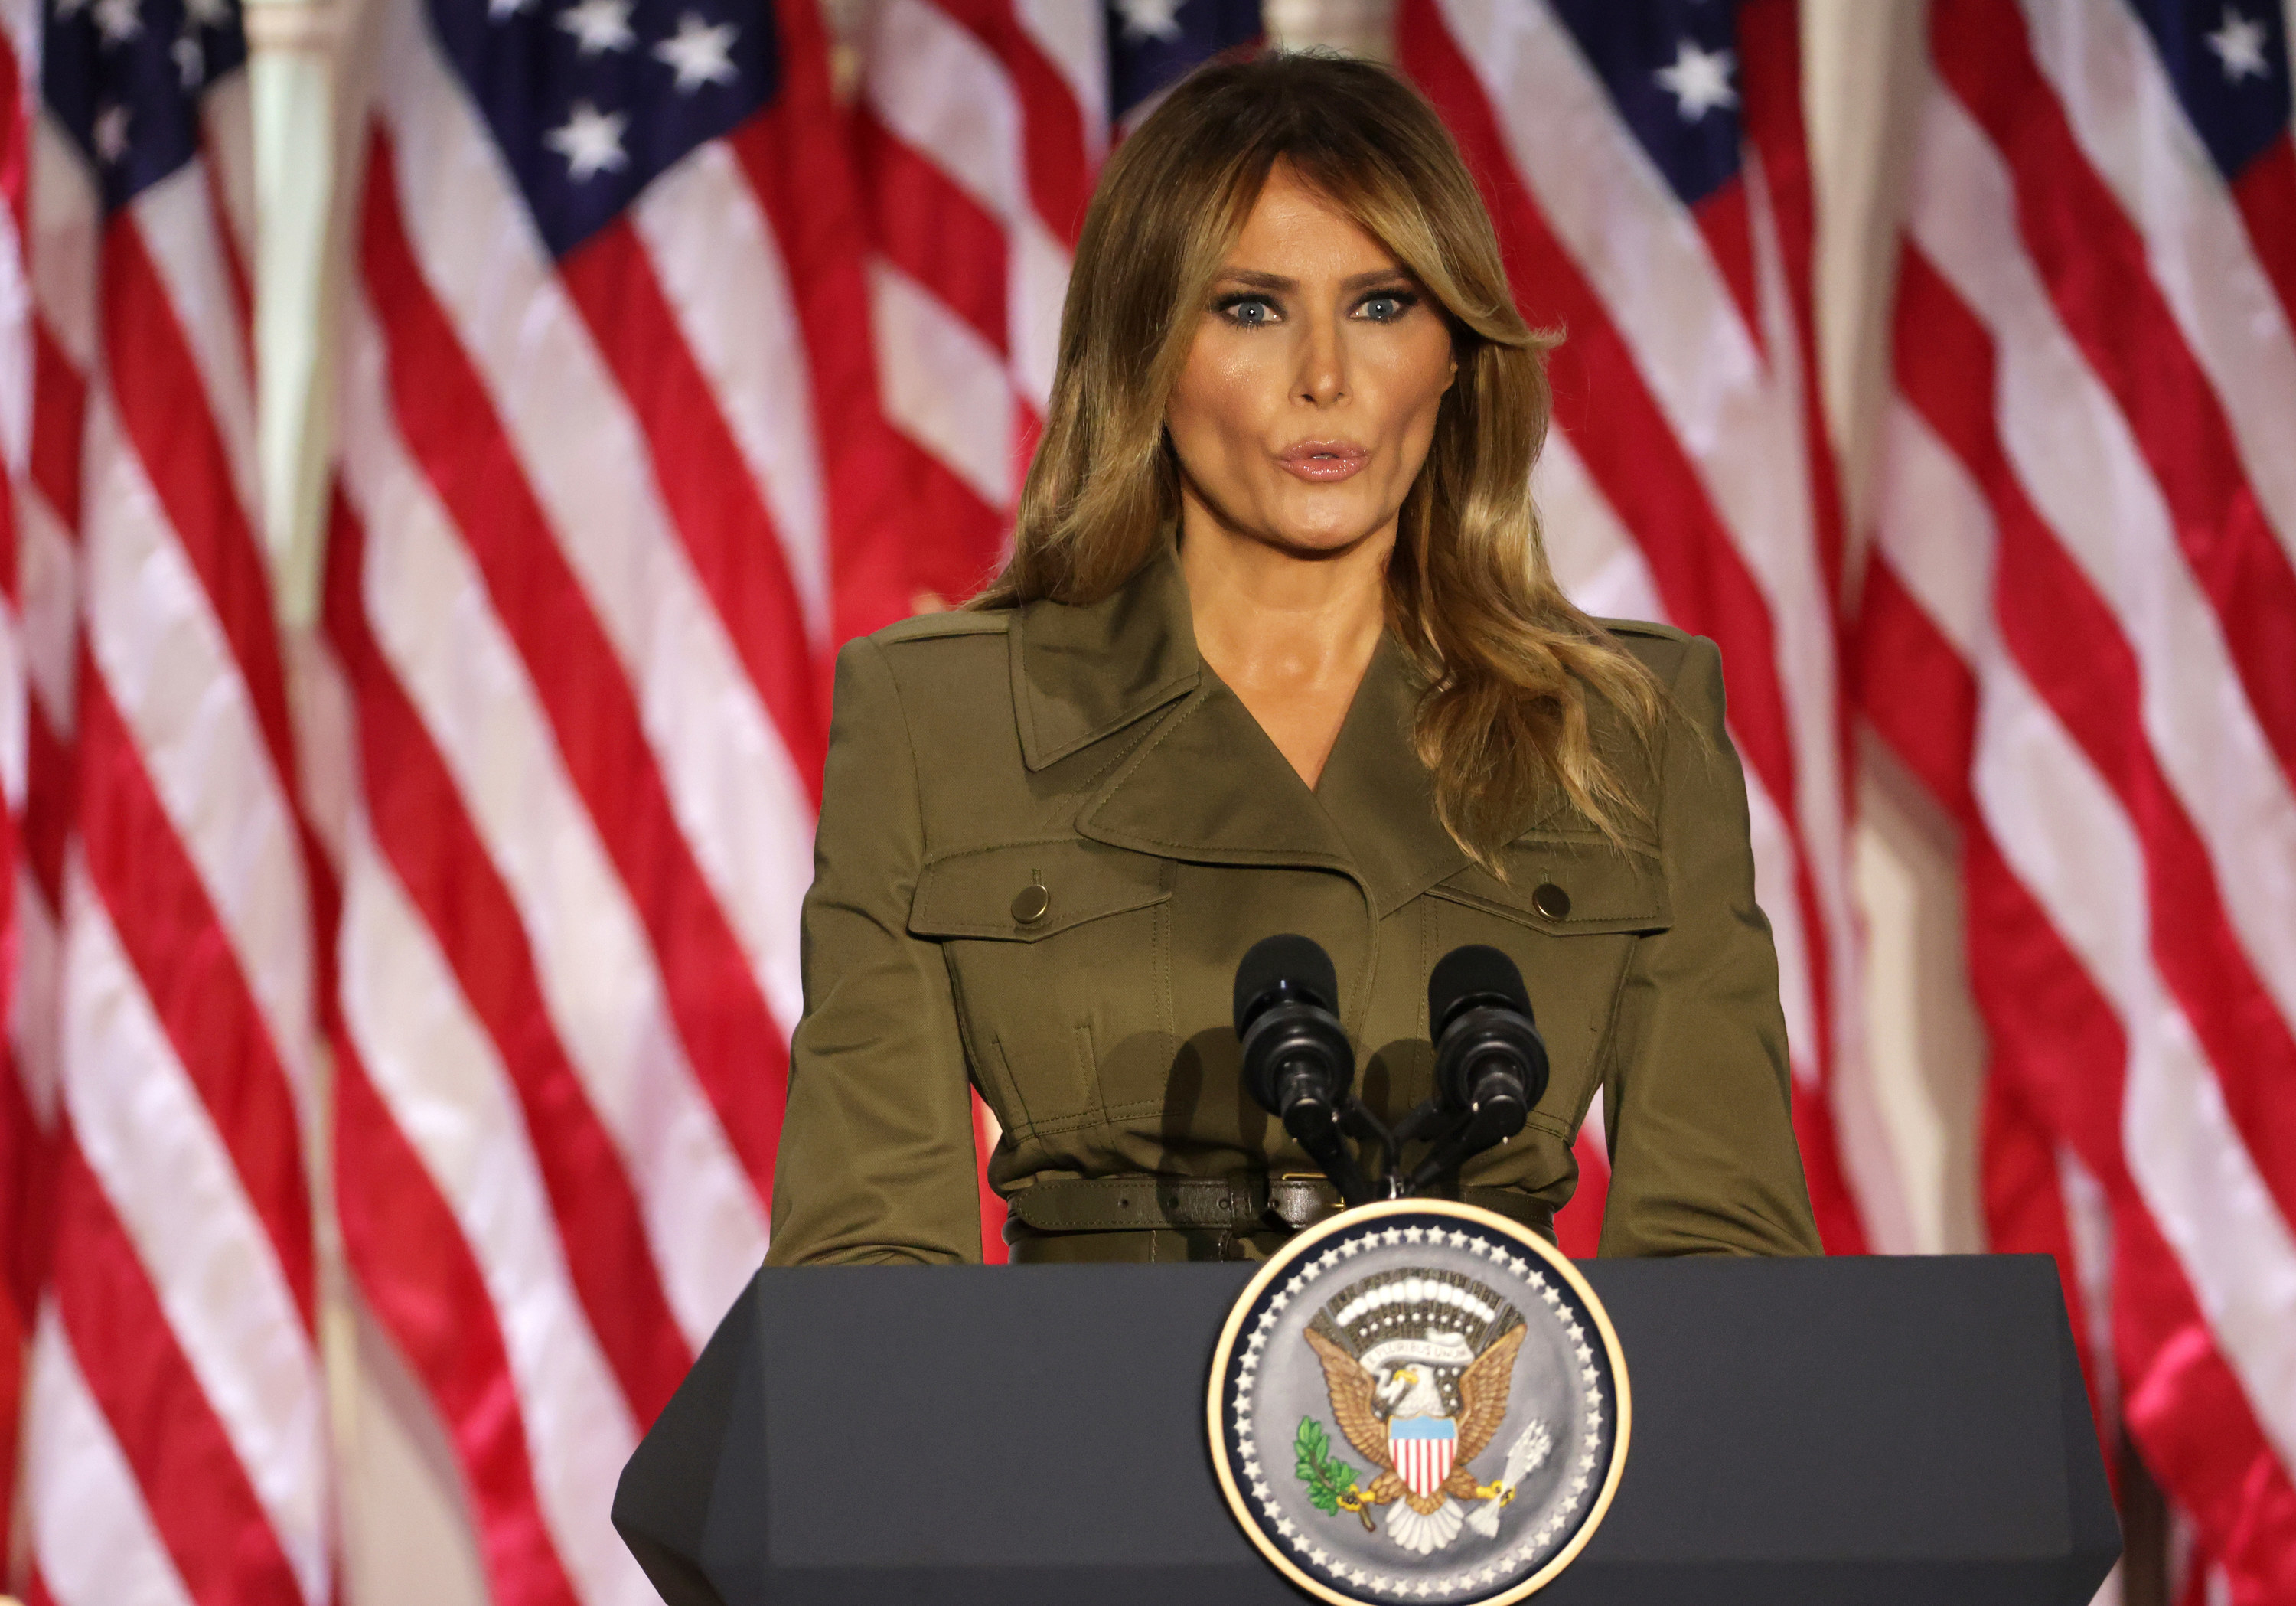 Melania Trump speaks from behind a lectern with the presidential seal on it